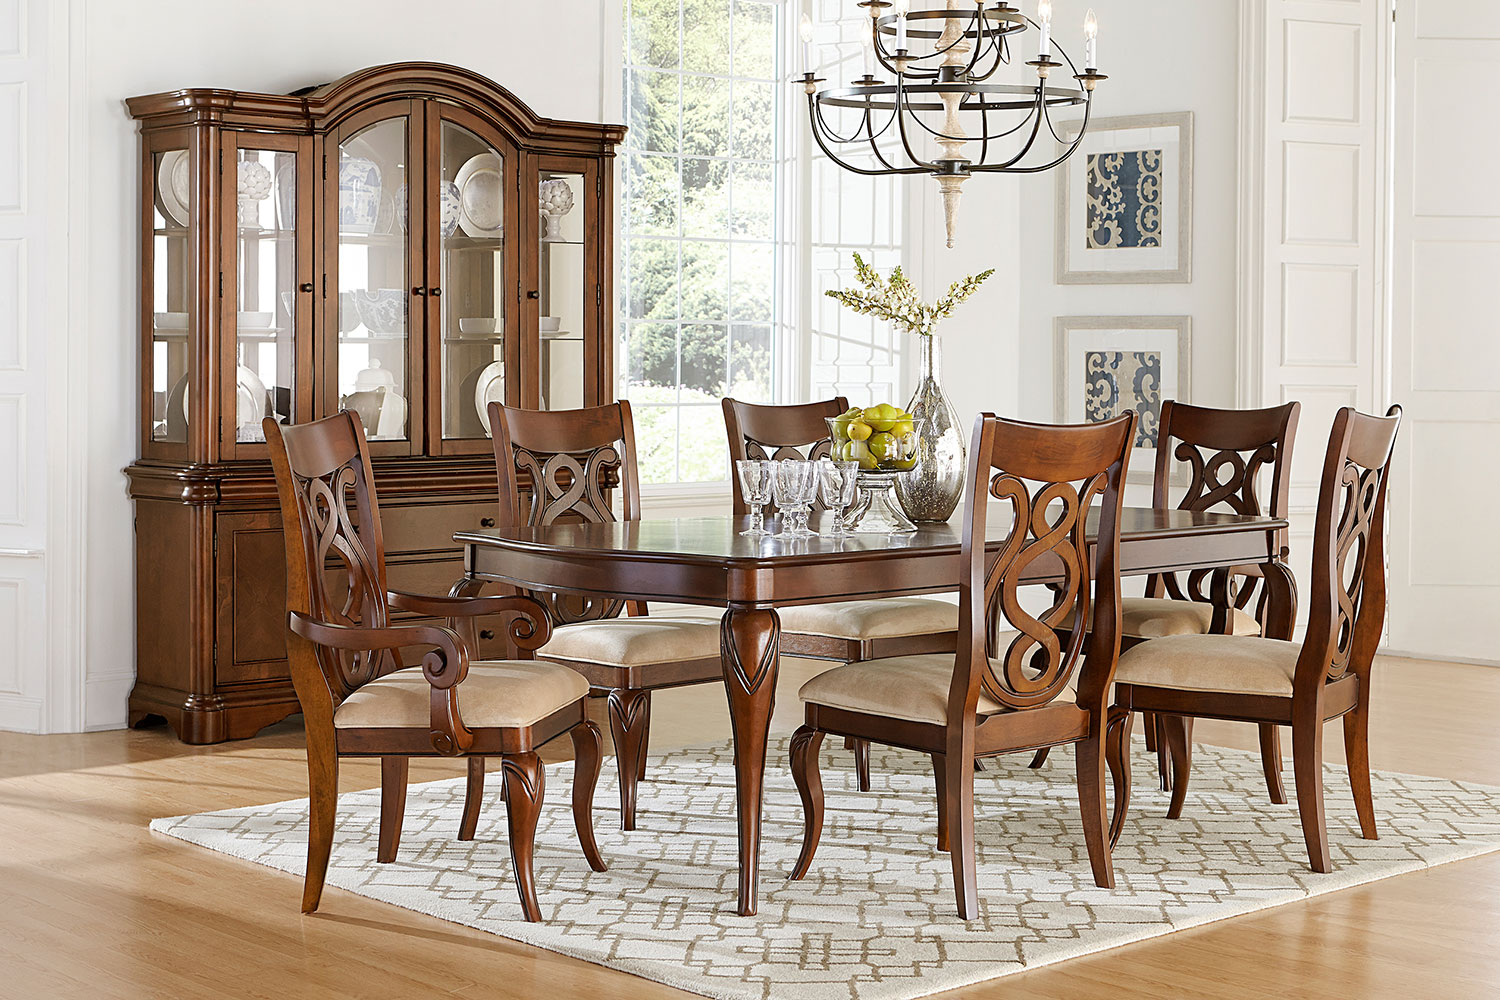 charles dining table, 4 side chairs and 2 arm chairs - auburn